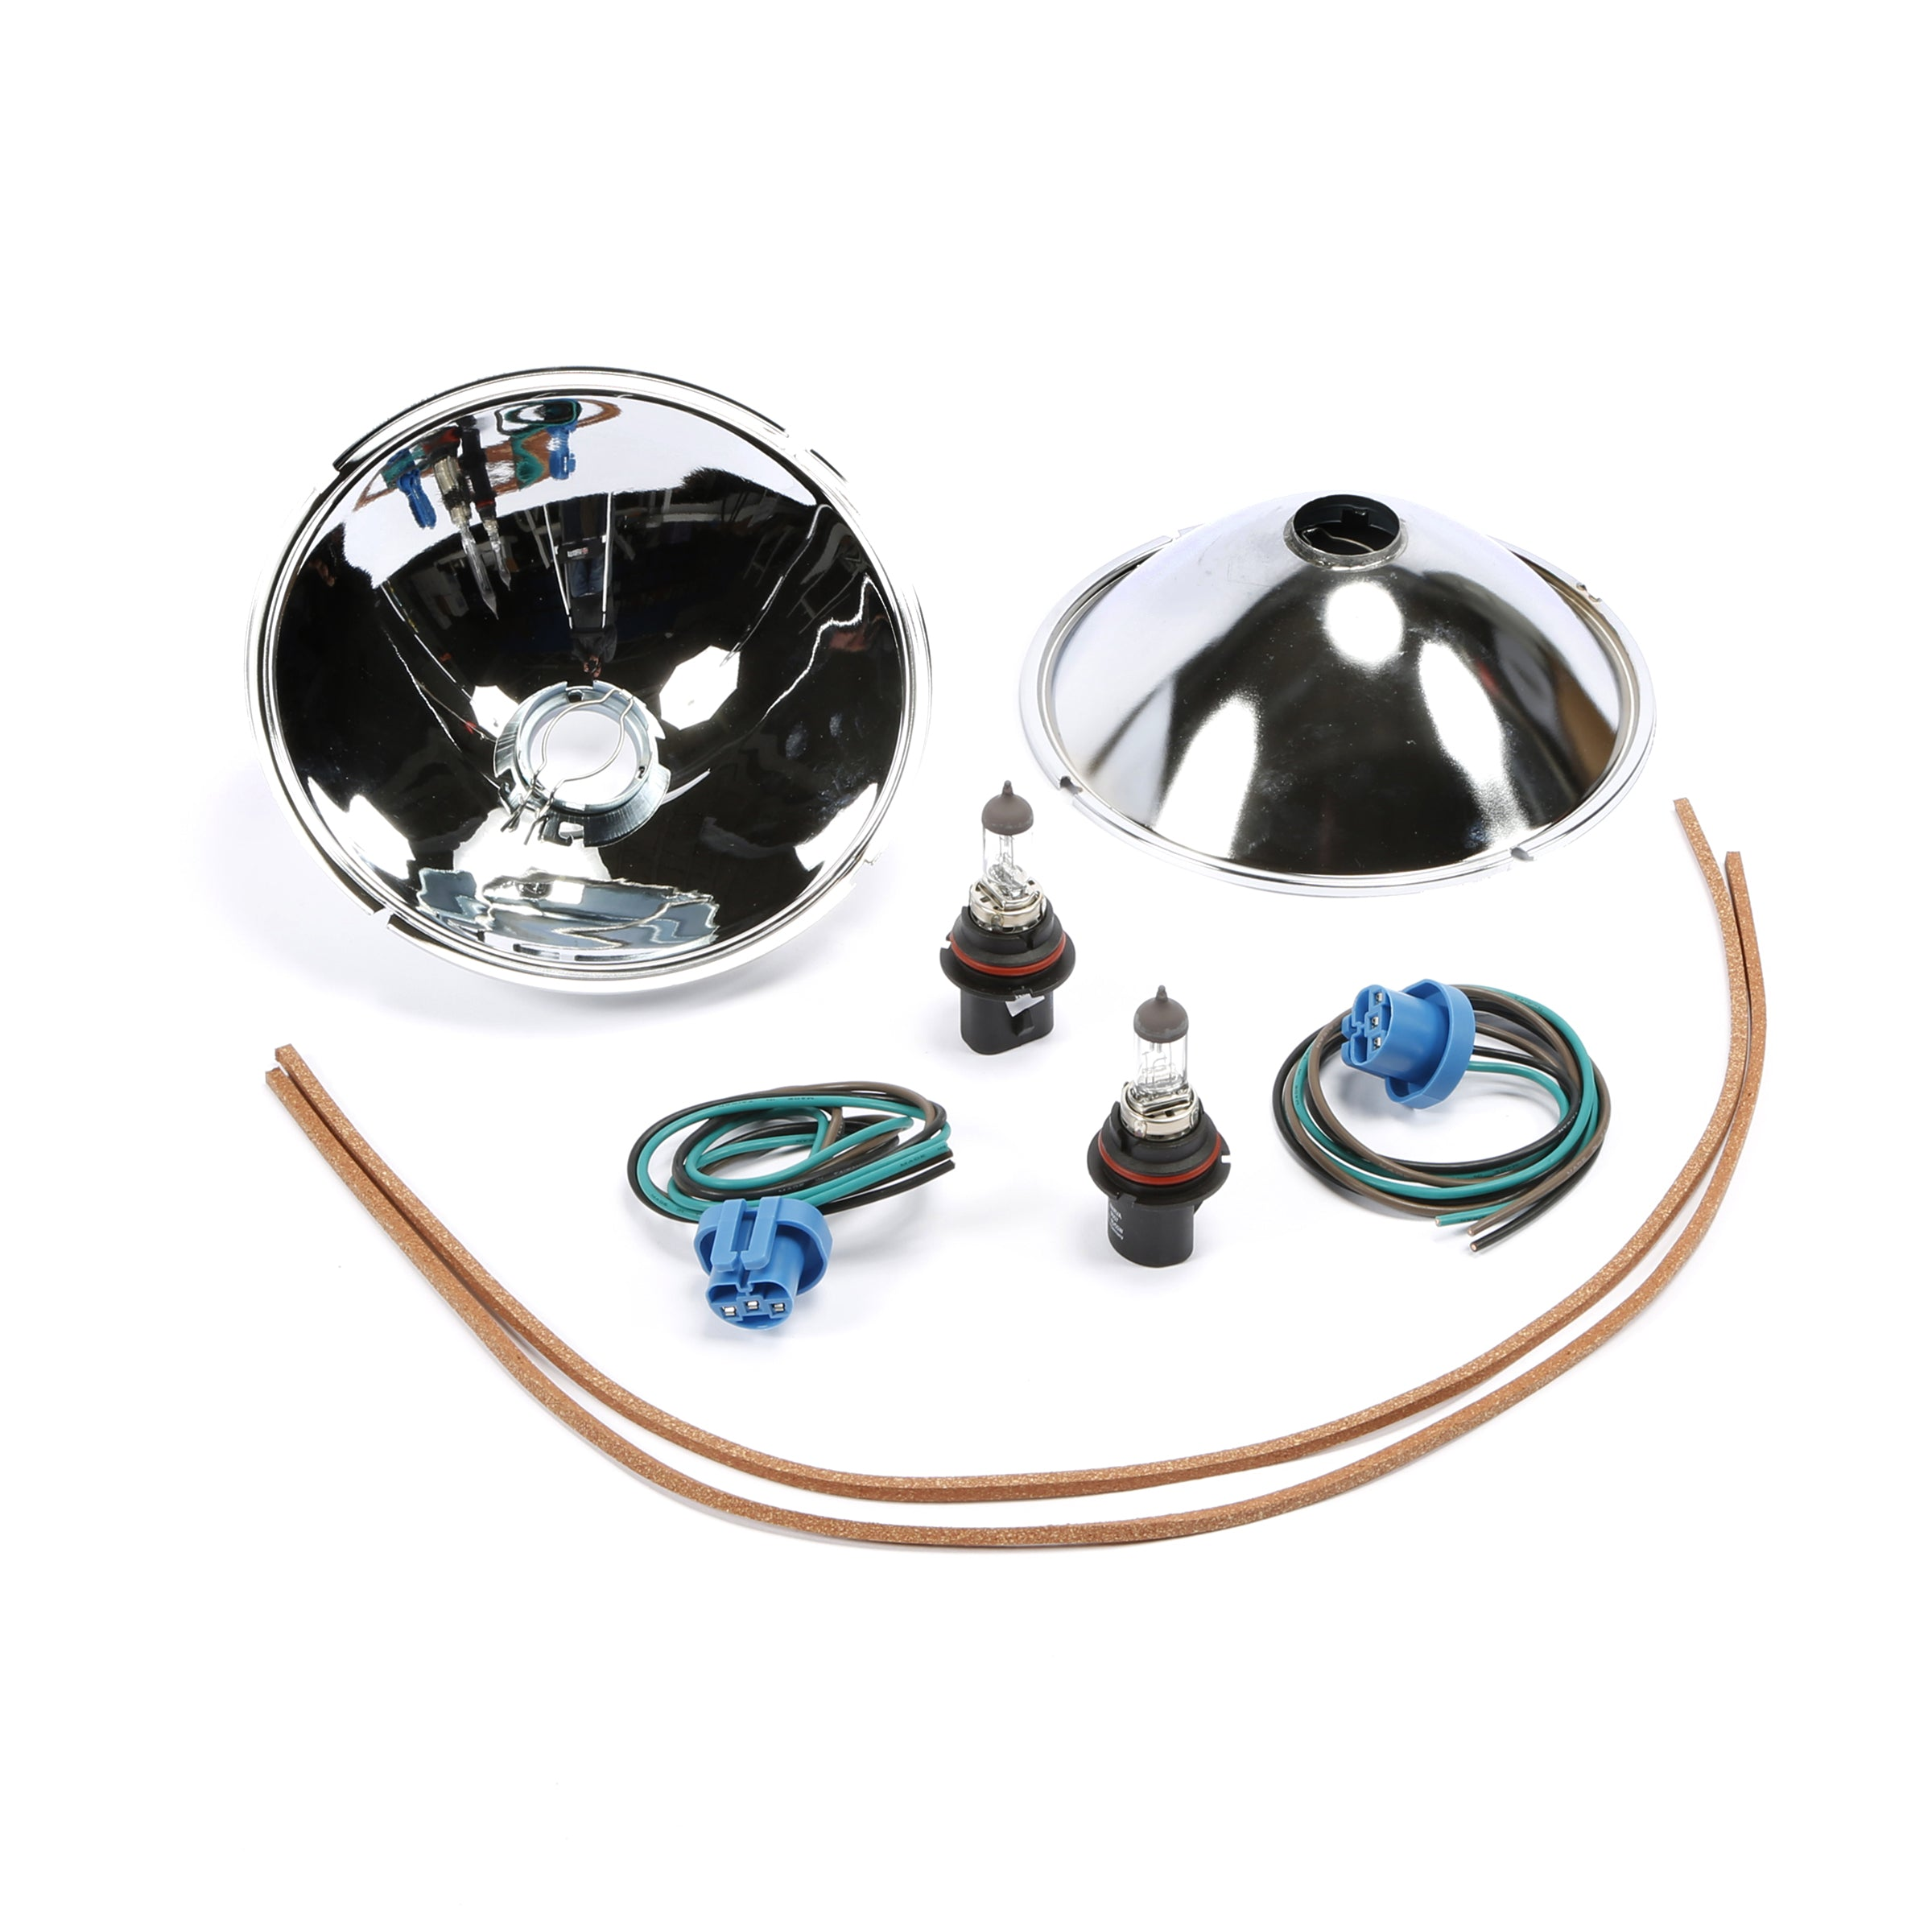 Quartz Halogen Kit with Reflectors (6 Volt) • 1928-31 Model A Ford